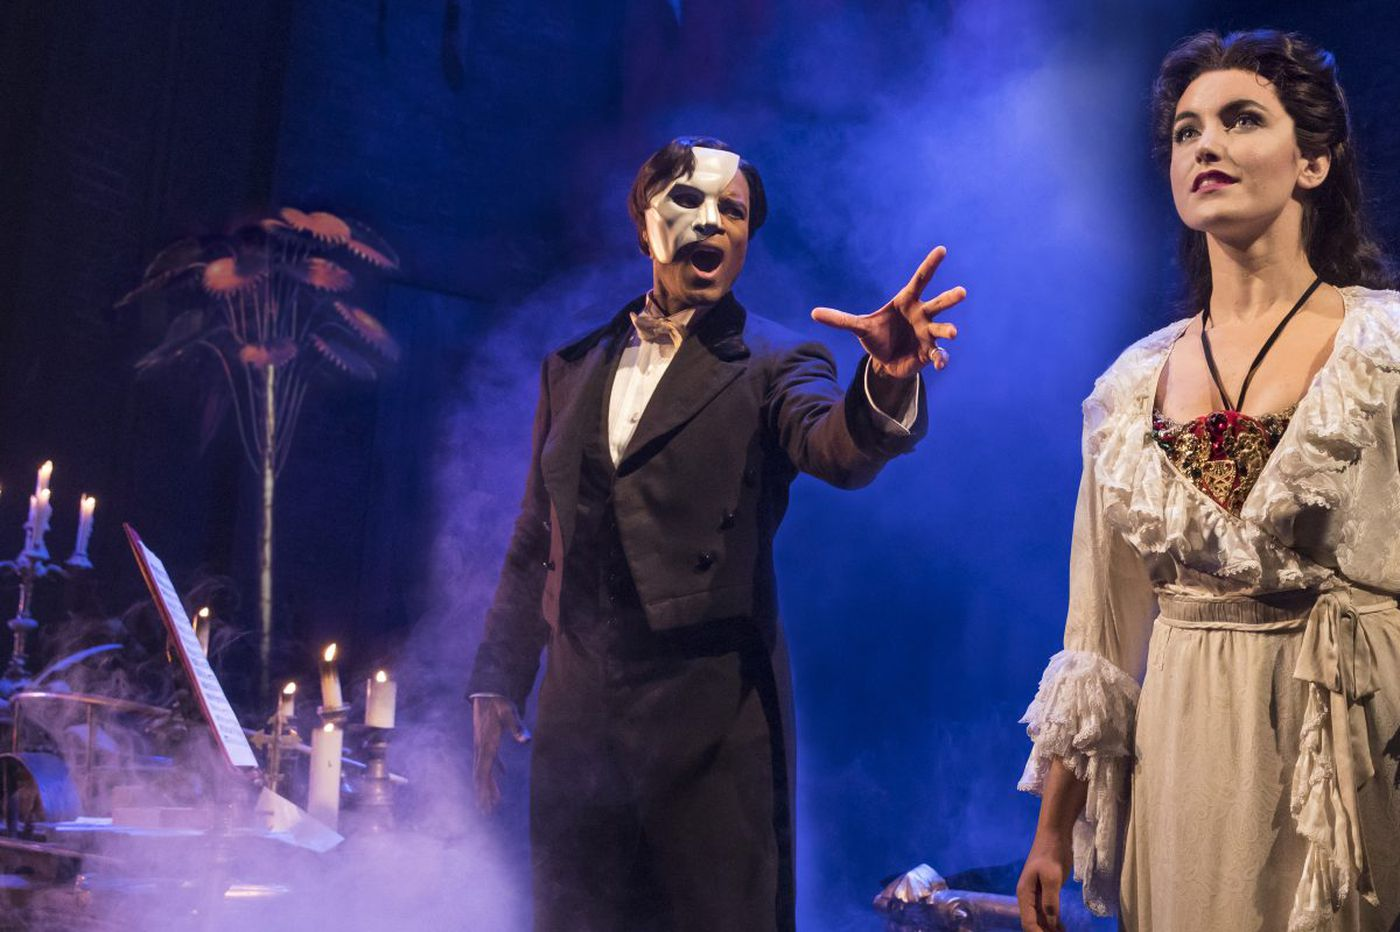 'Phantom of the Opera' excites and enchants at Academy of Music